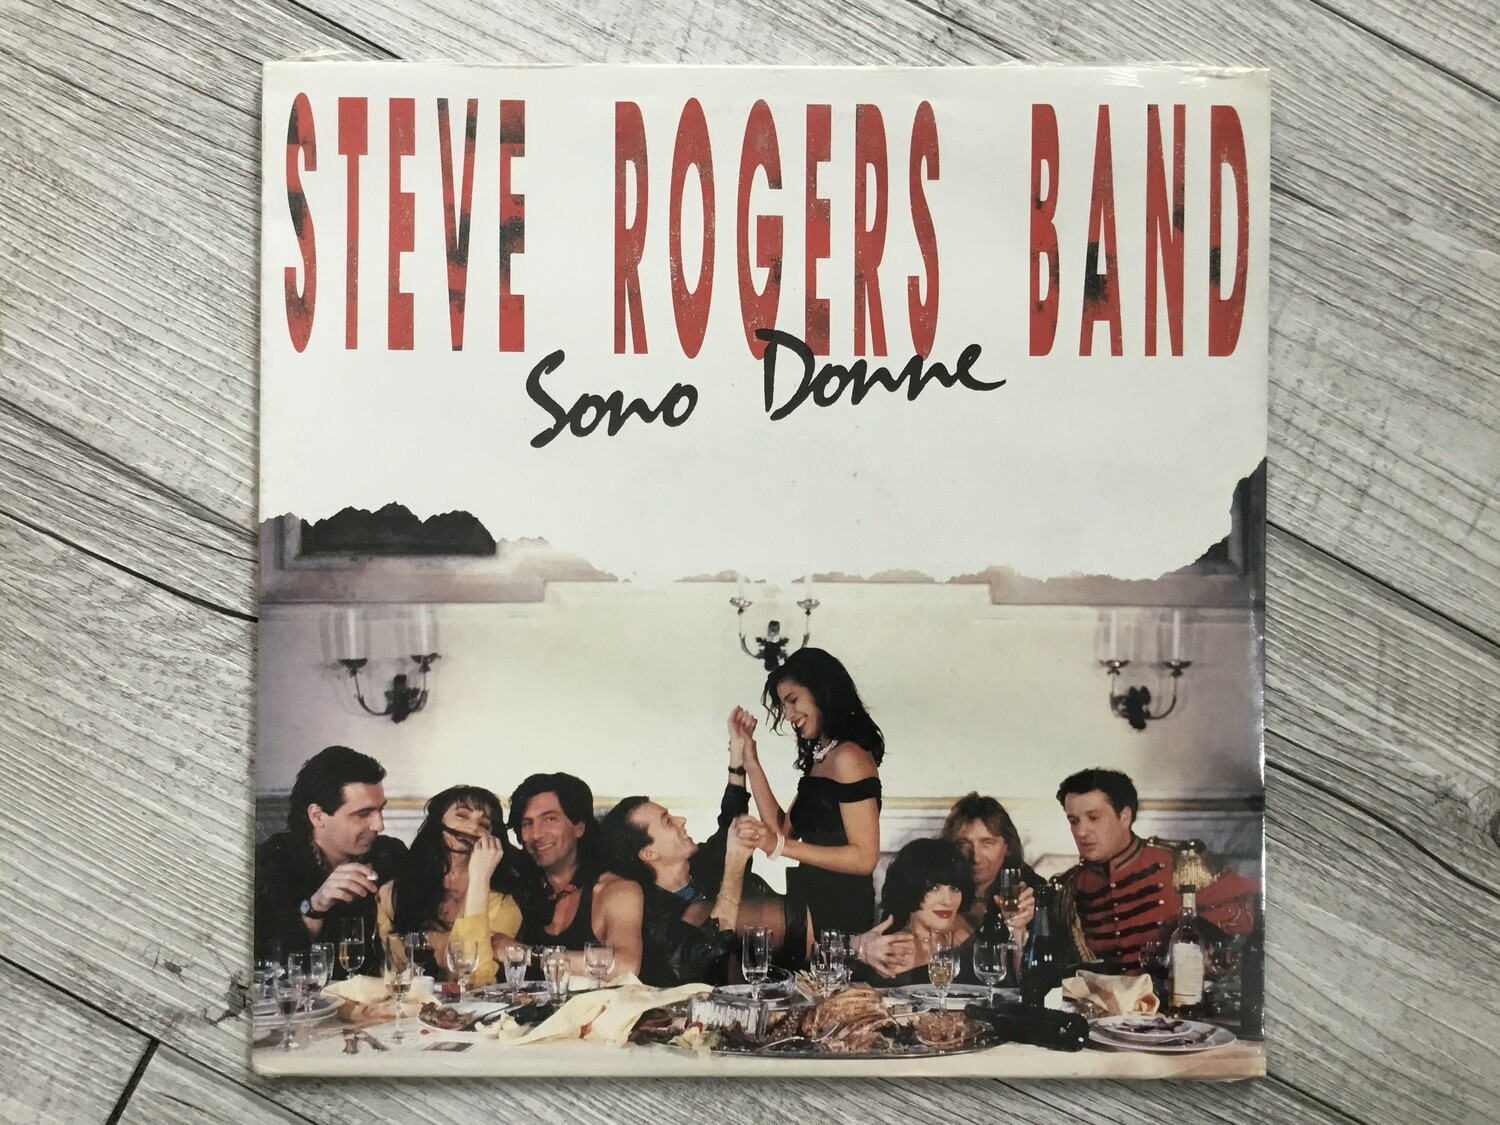 STEVE ROGERS BAND - Sono donne